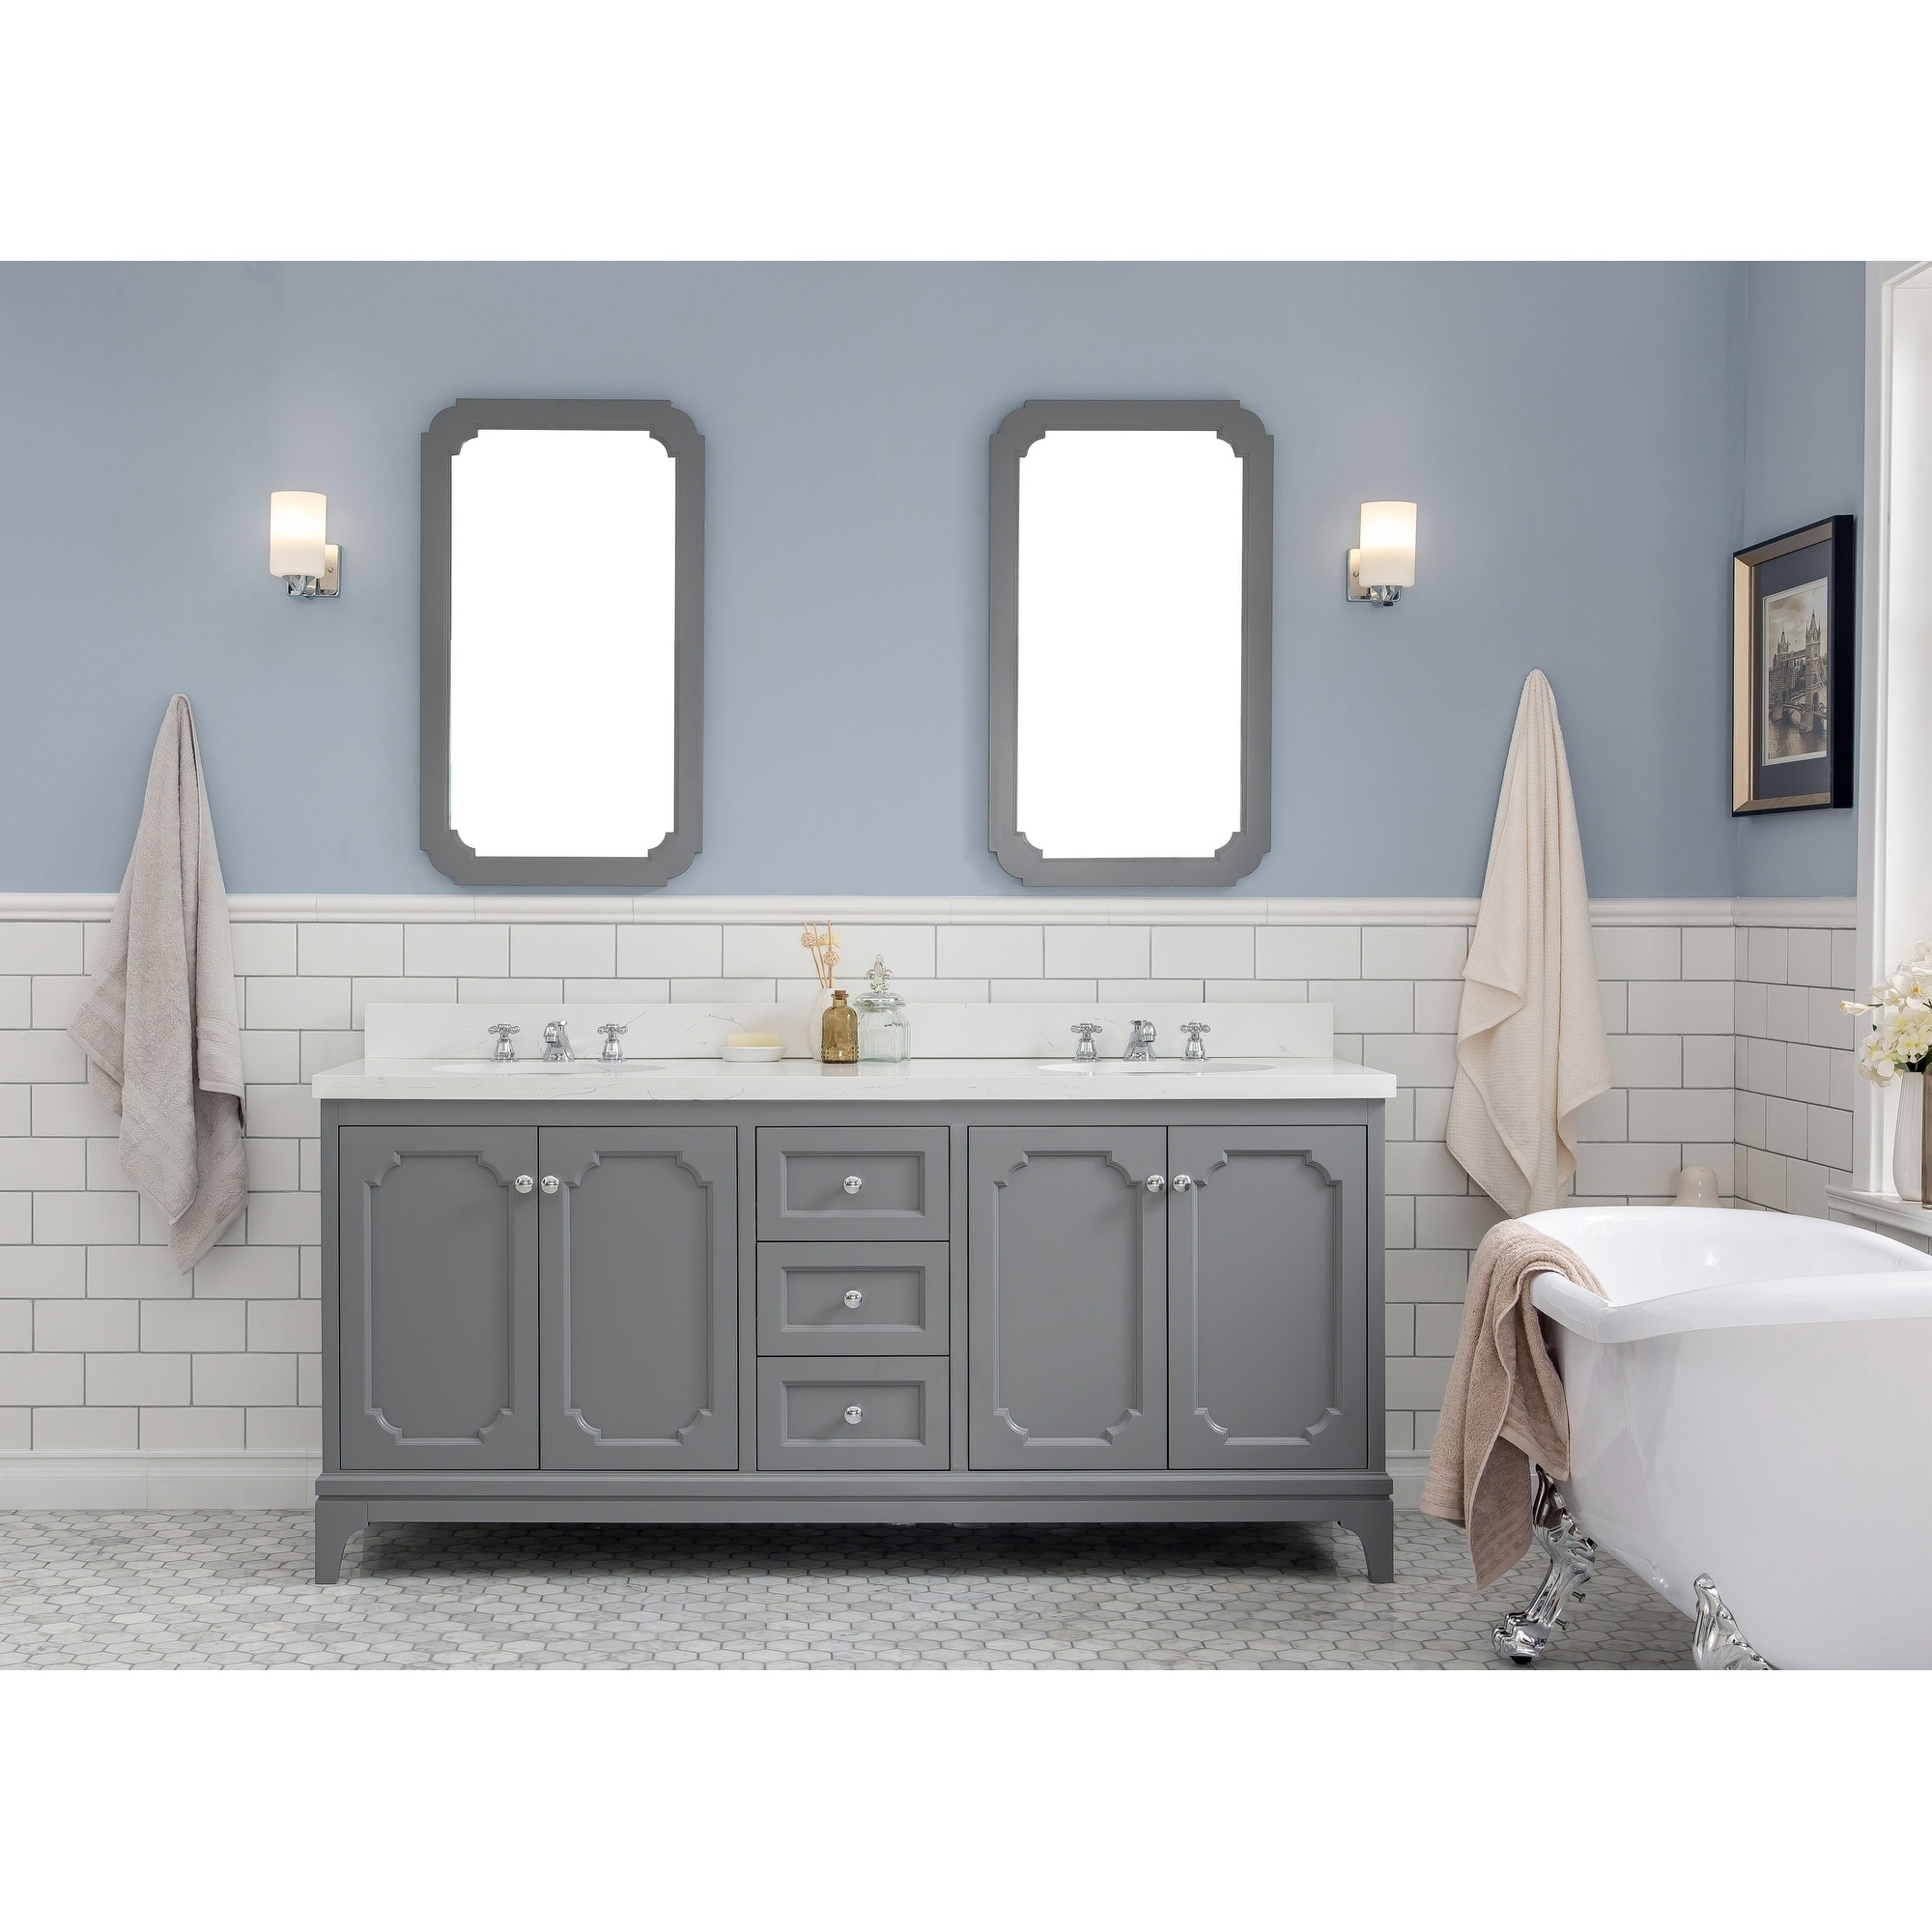 Queen 72 Quartz Carrara Bathroom Vanity With Mirrors And Faucets Overstock 24267841